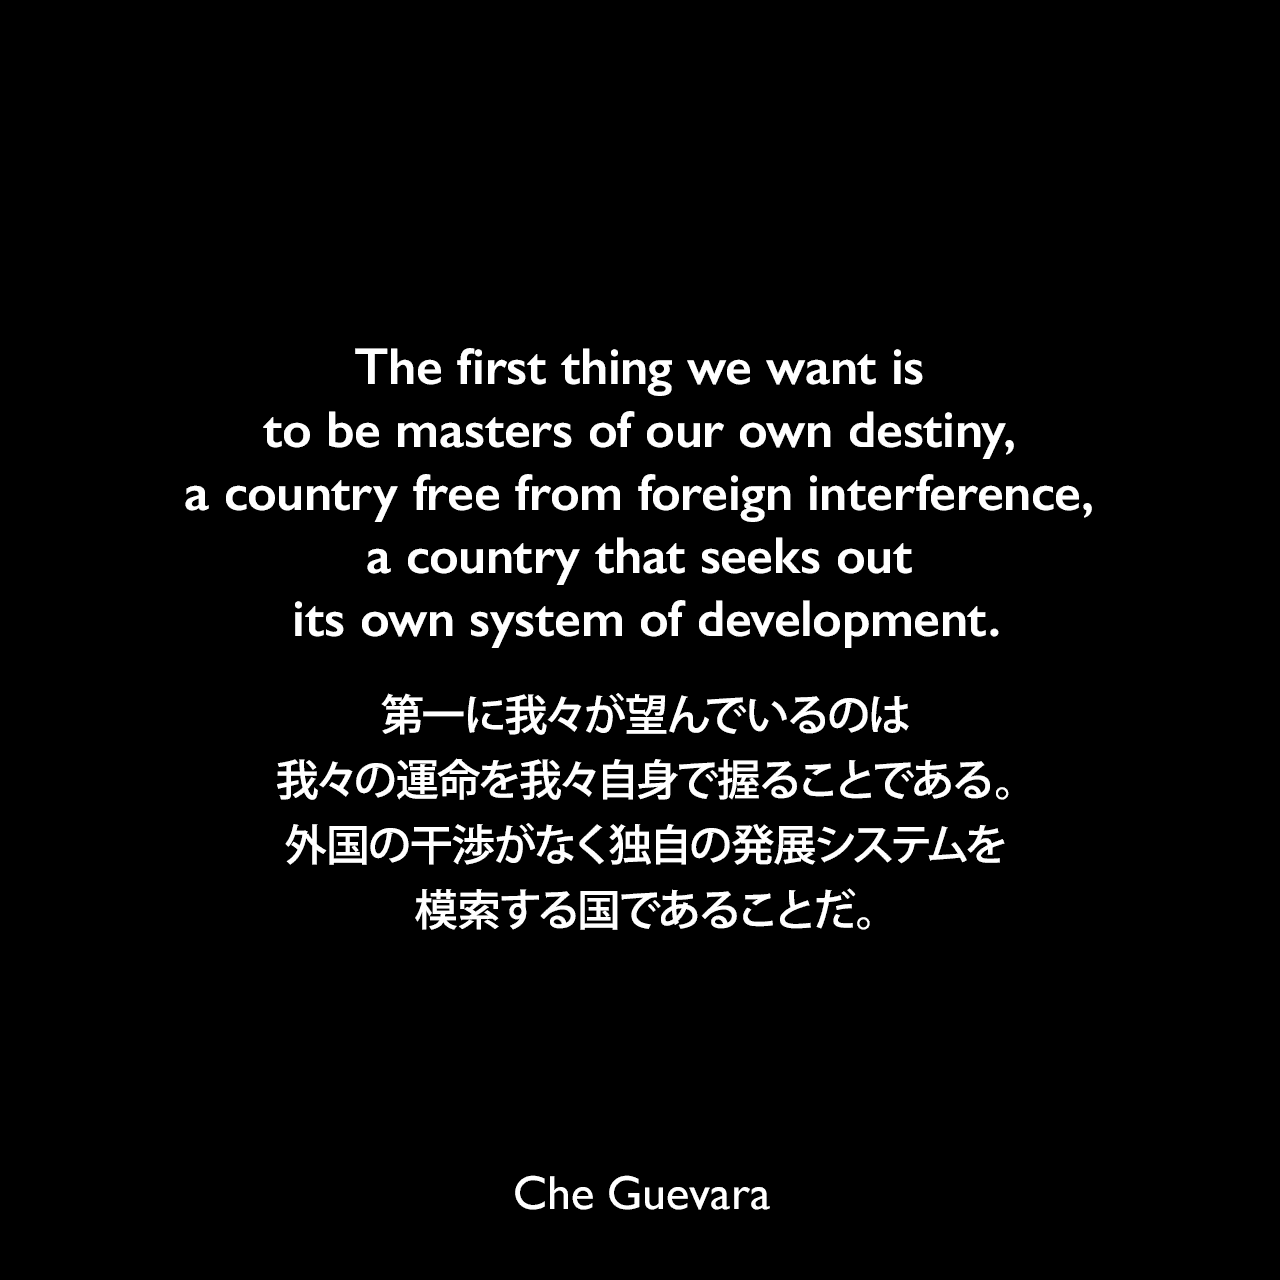 The first thing we want is to be masters of our own destiny, a country free from foreign interference, a country that seeks out its own system of development.第一に我々が望んでいるのは、我々の運命を我々自身で握ることである。外国の干渉がなく独自の発展システムを模索する国であることだ。- John Gerassiによる本「Venceremos! The Speeches and Writings of Ernesto Che Guevara」よりChe Guevara